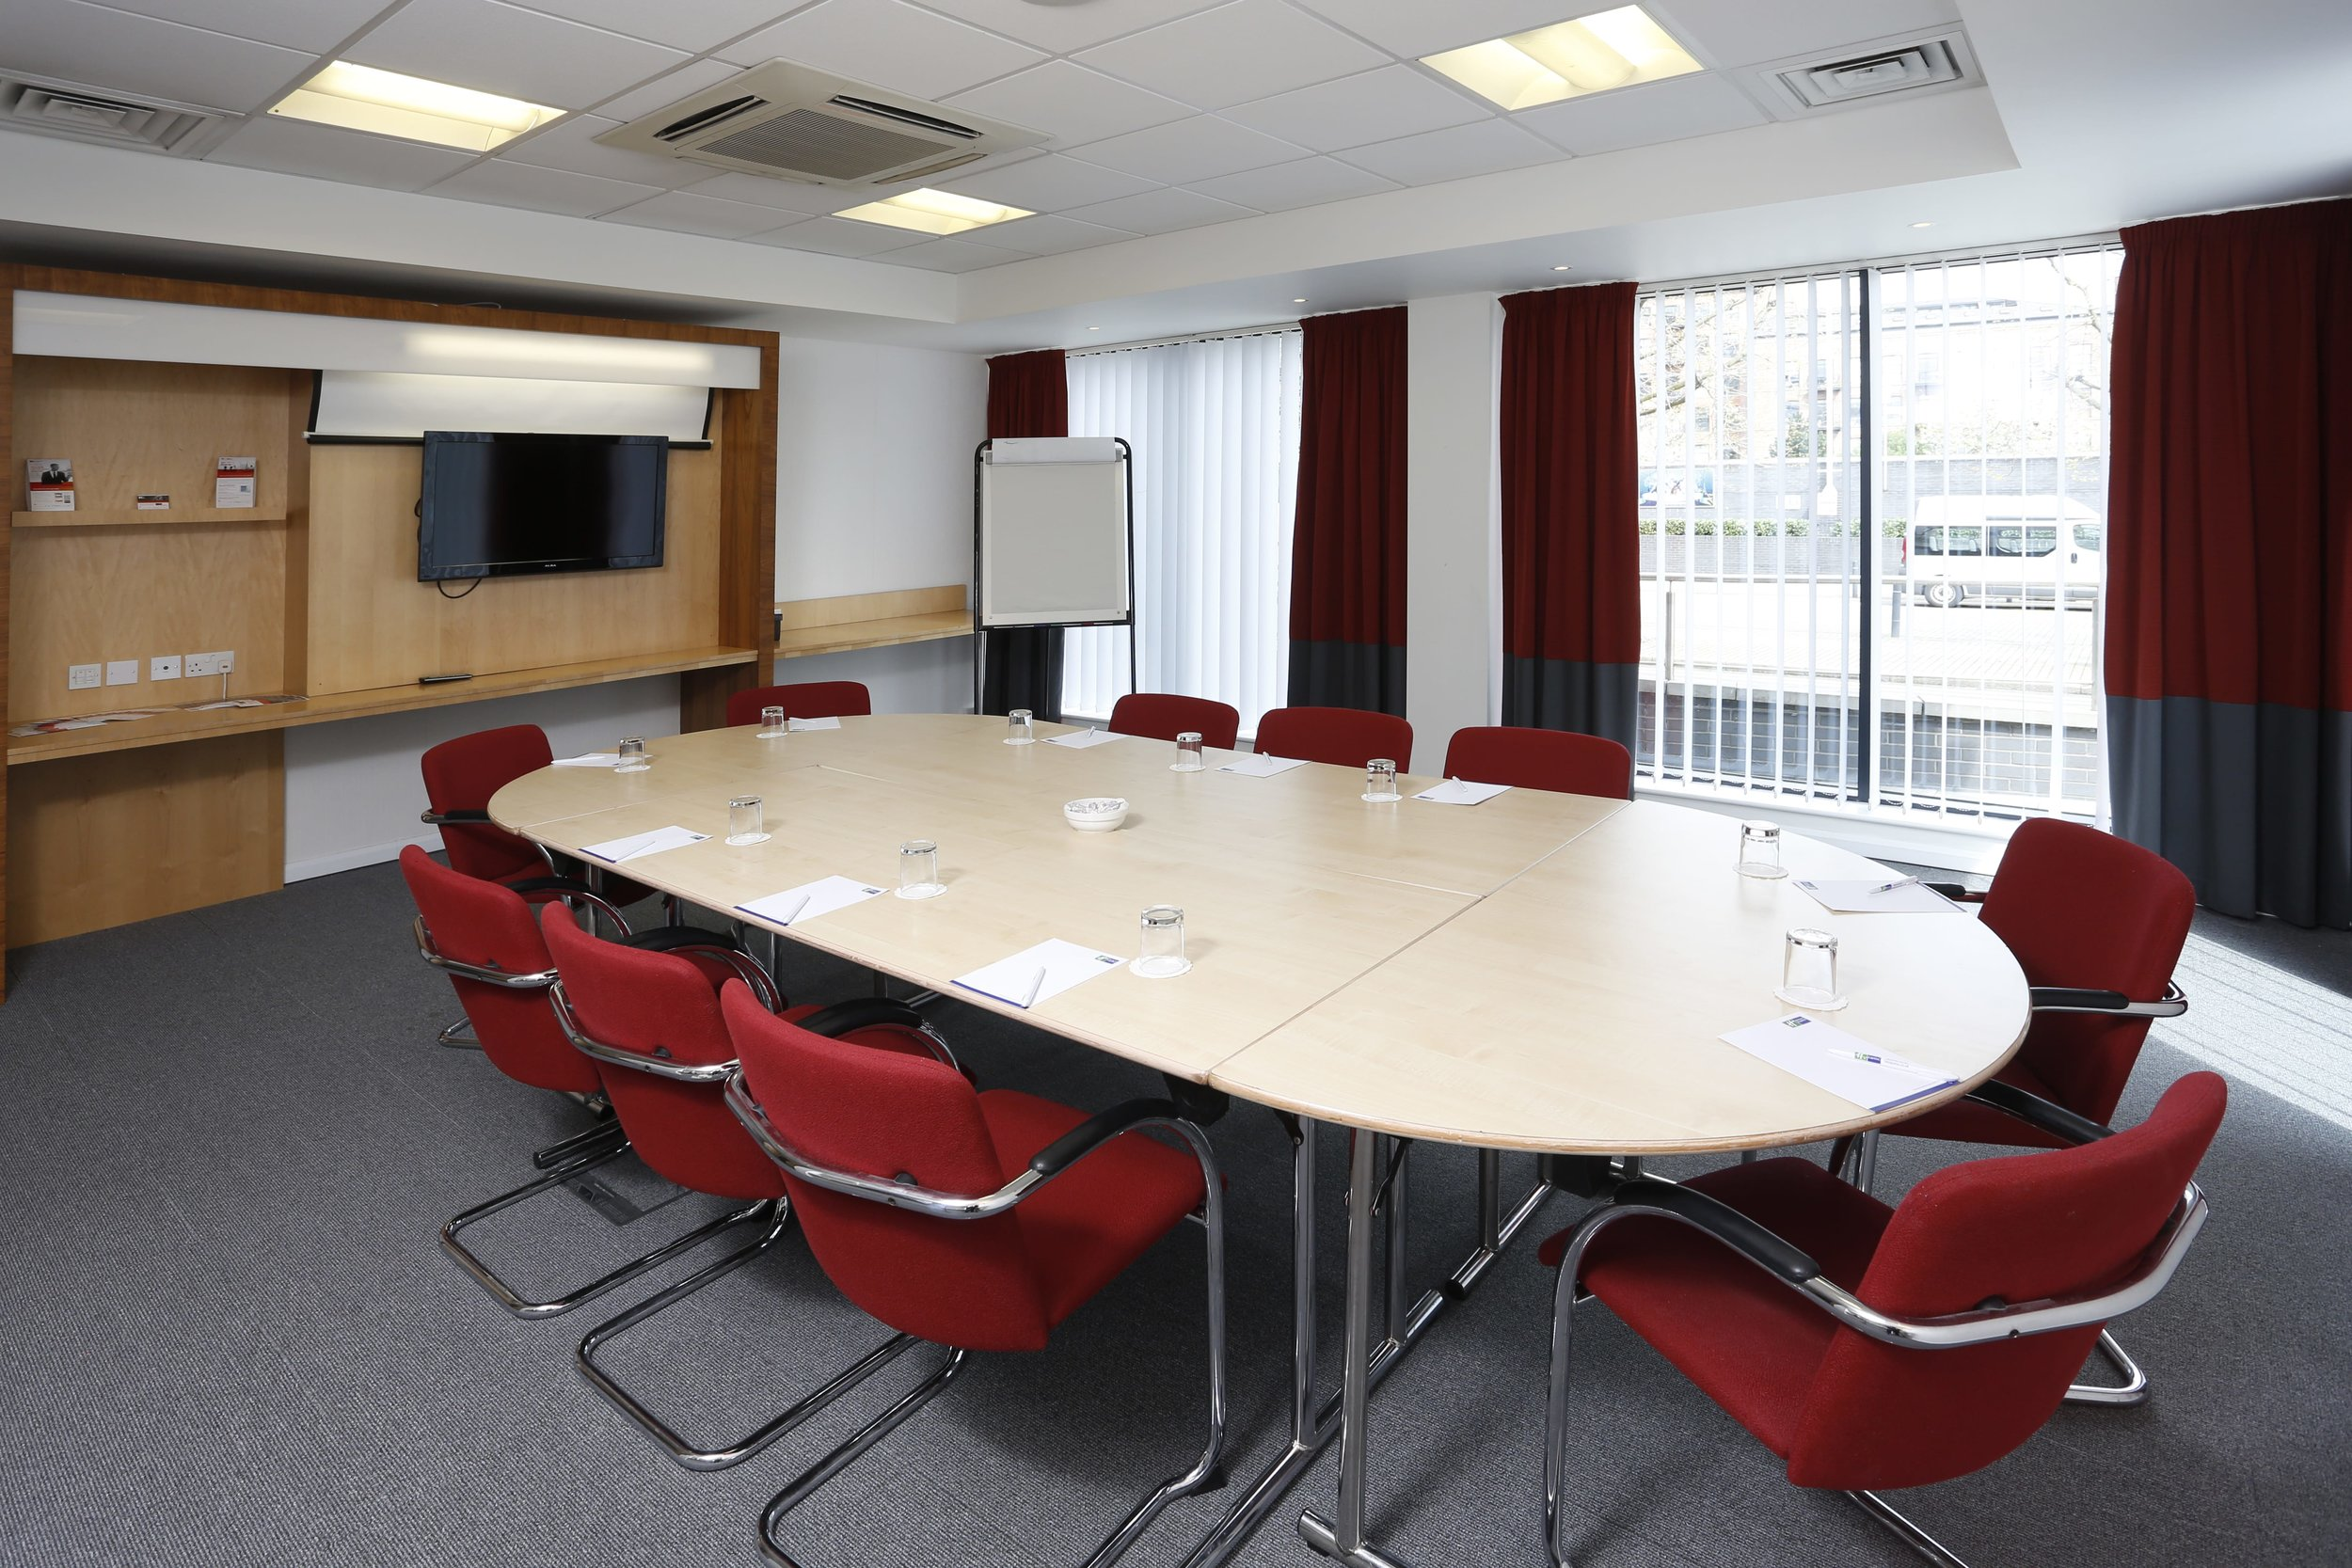 Meeting-room-Oval-min.jpg